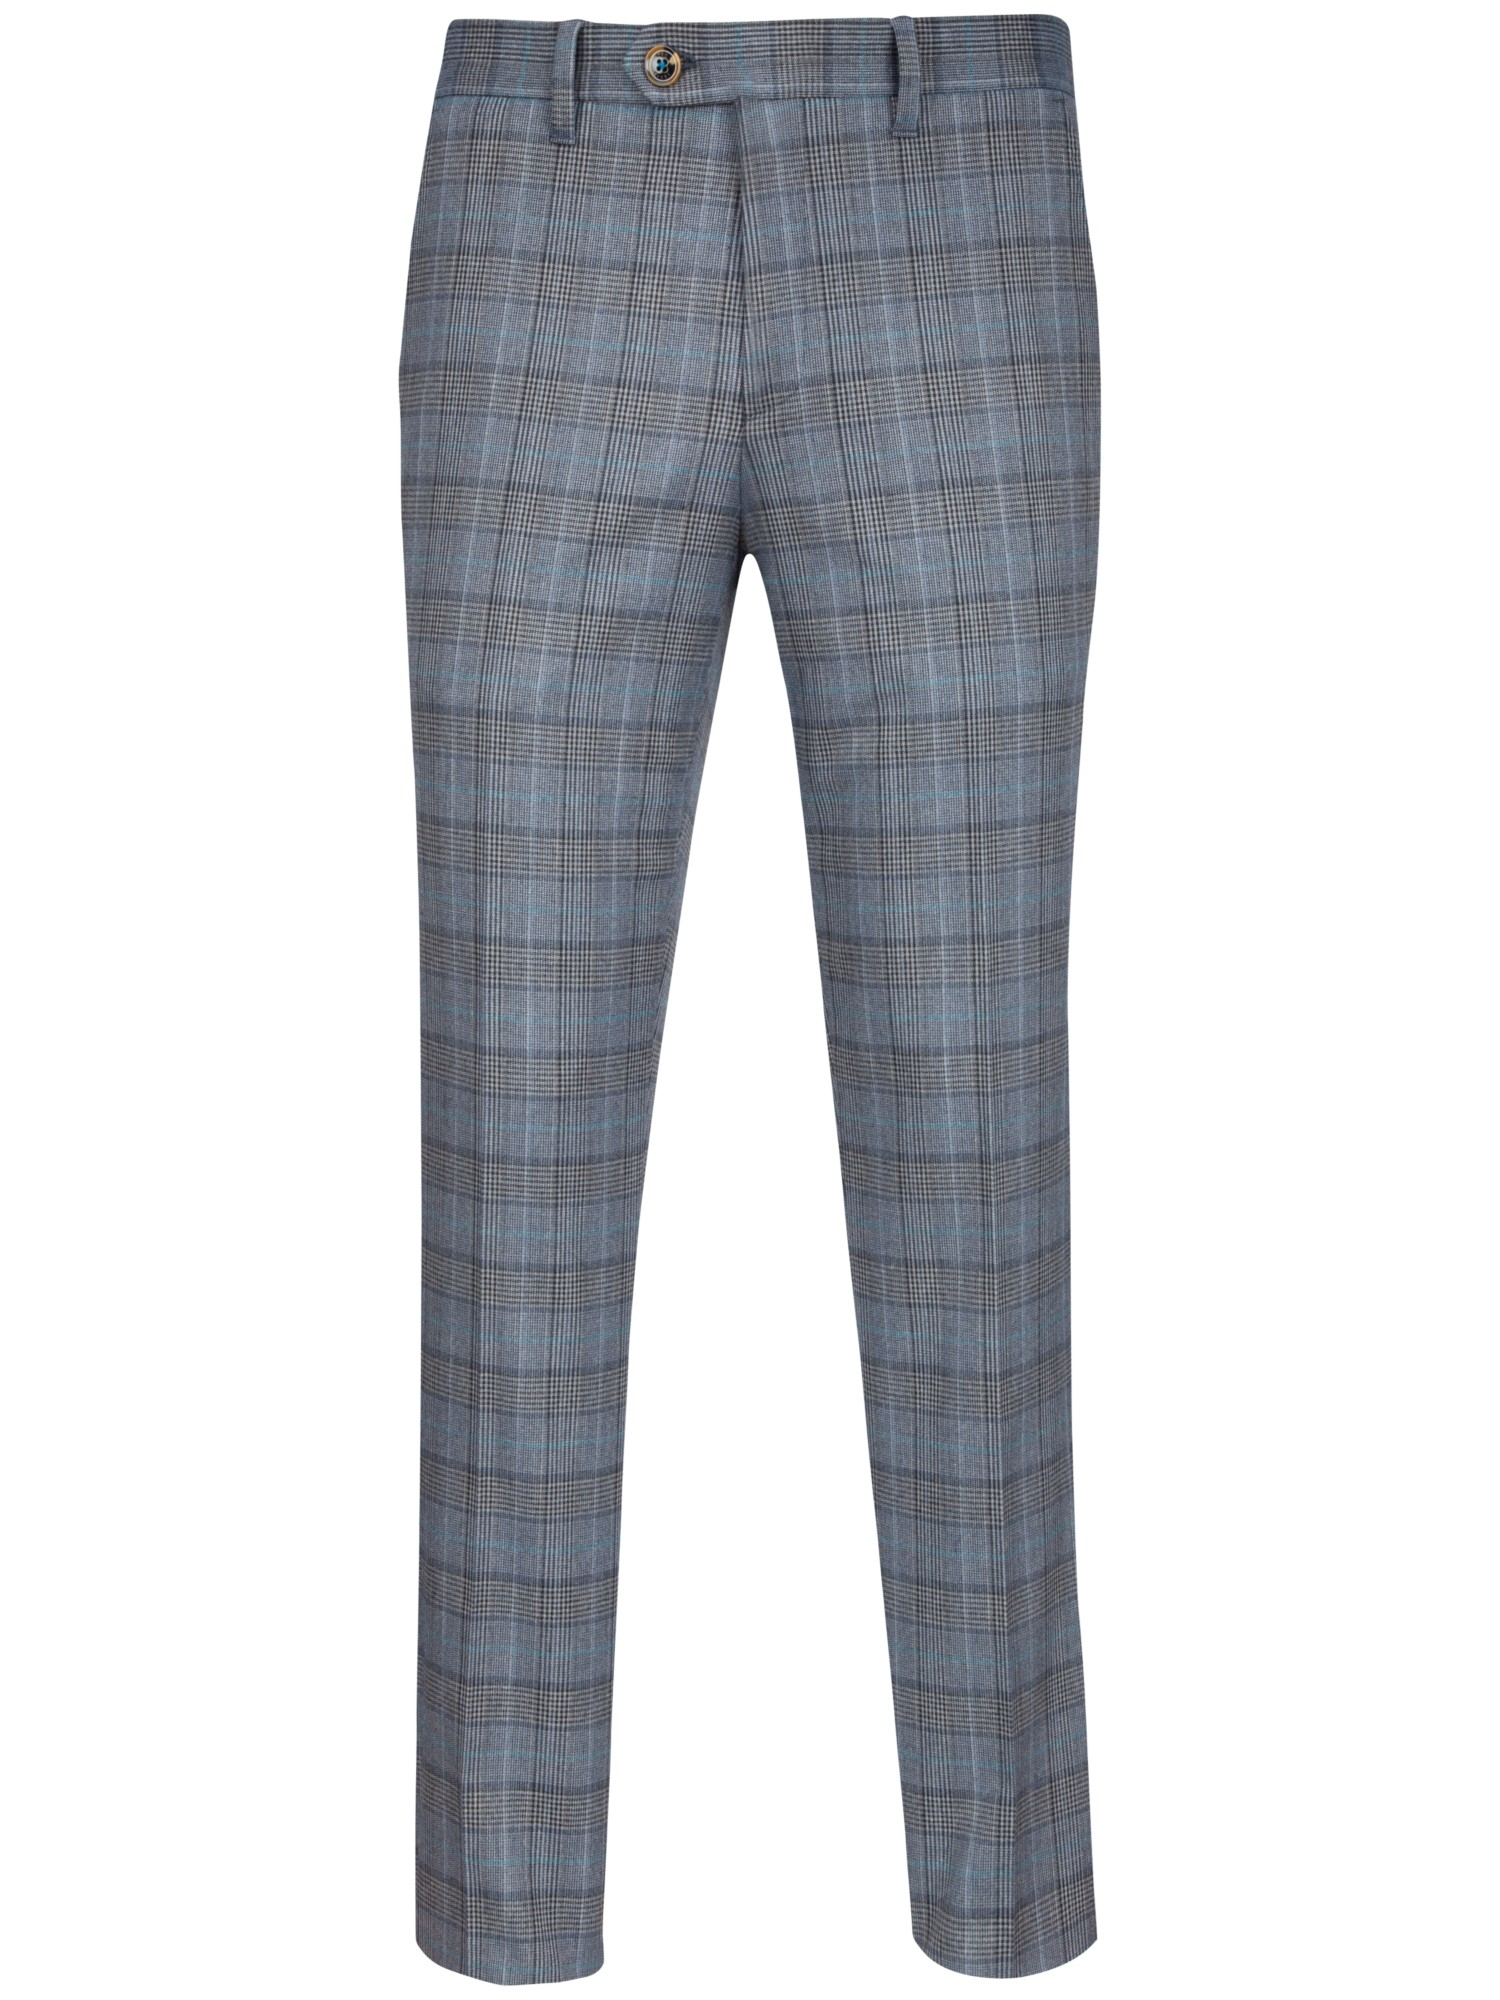 Ted Baker Piitro Tonal Check Trousers in Blue for Men